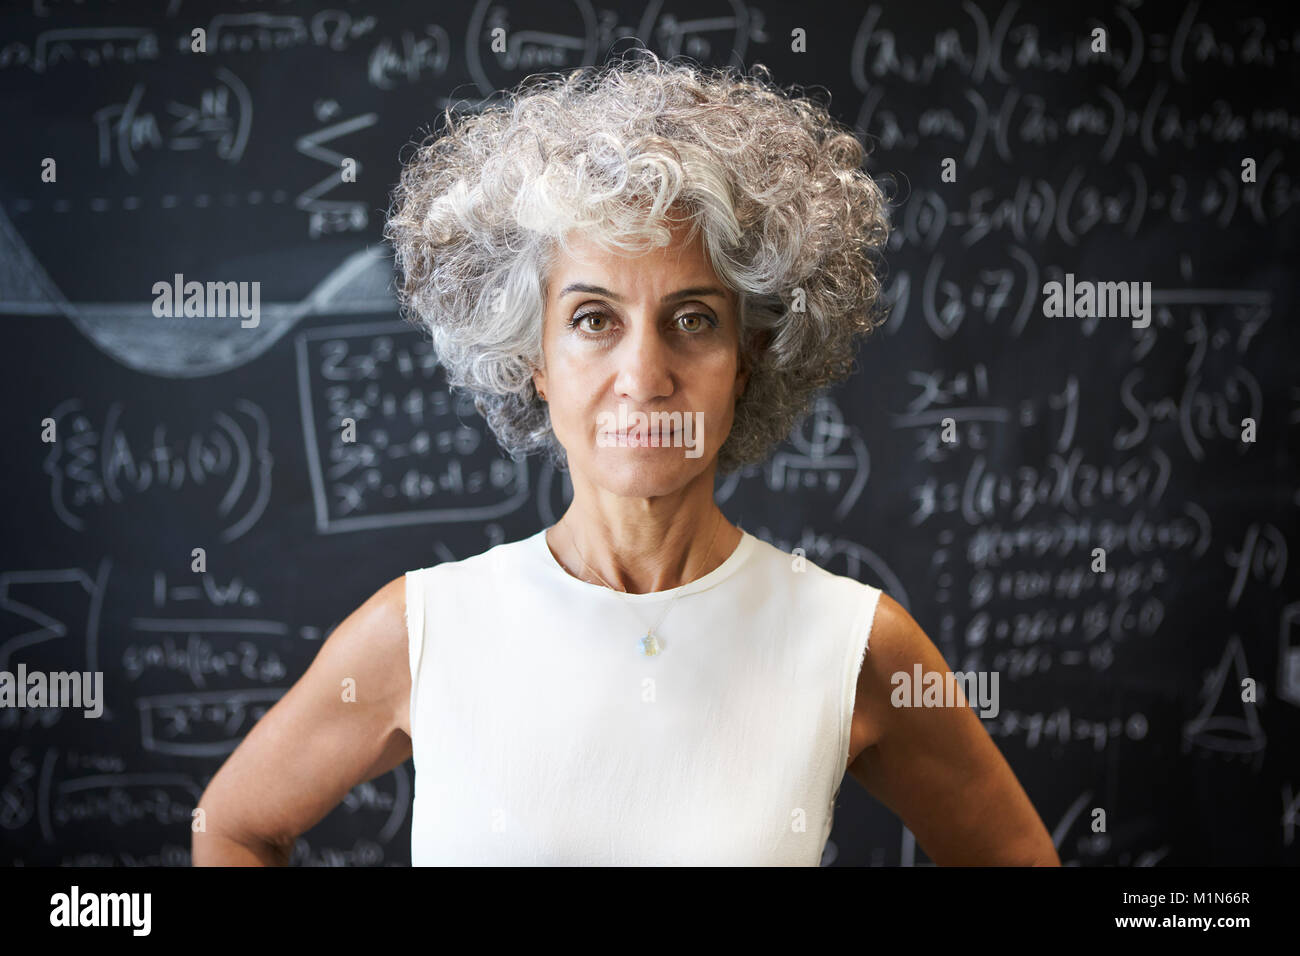 Middle aged academic woman standing in front of blackboard - Stock Image